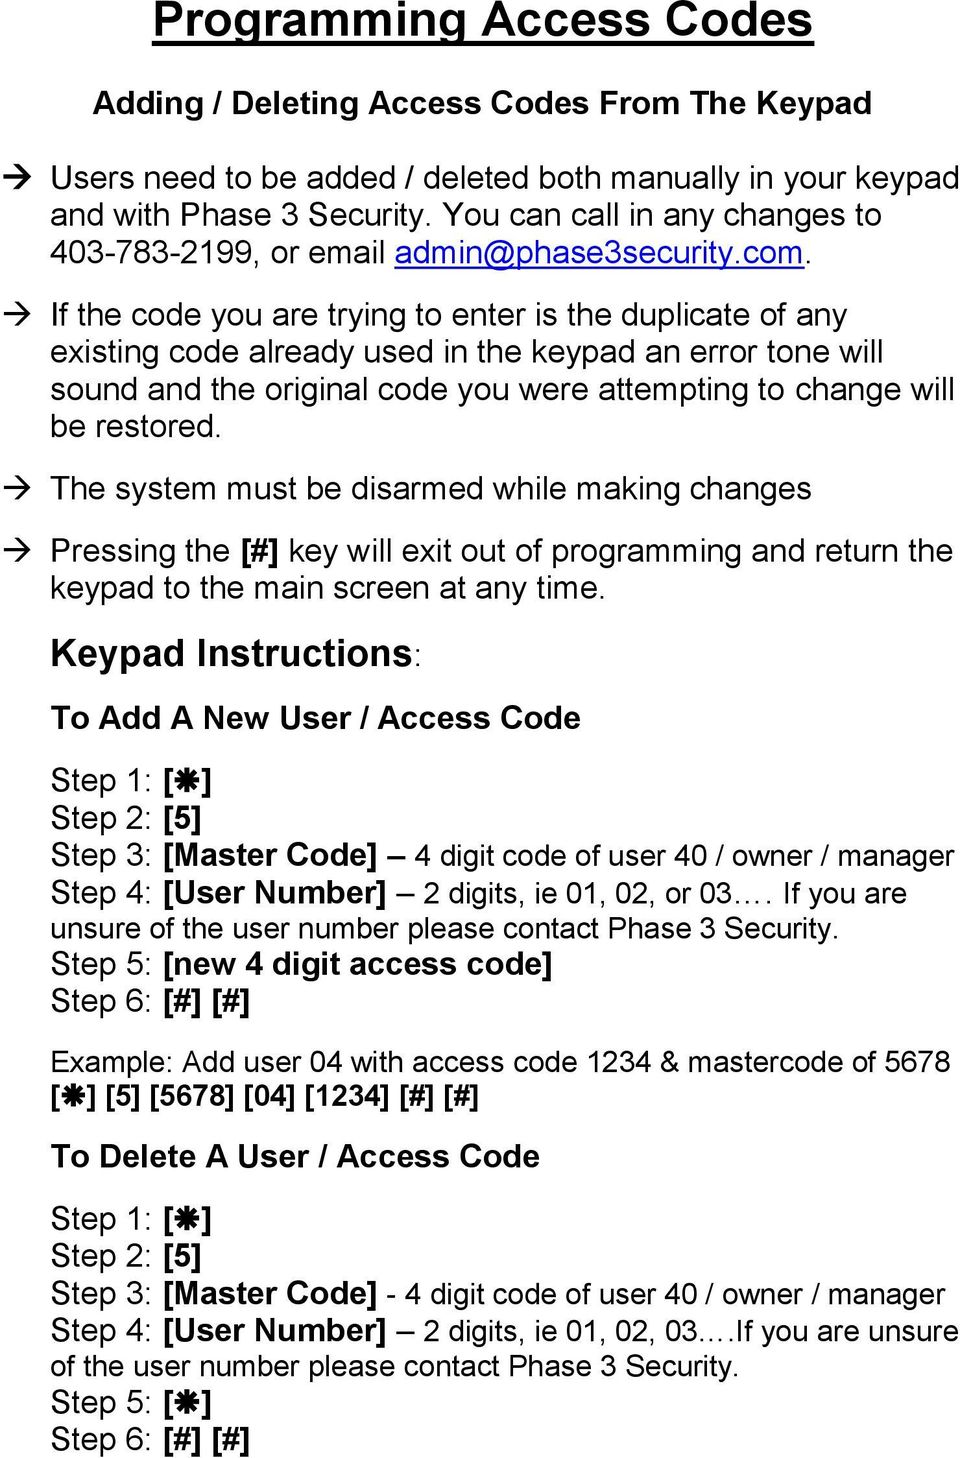 If the code you are trying to enter is the duplicate of any existing code already used in the keypad an error tone will sound and the original code you were attempting to change will be restored.